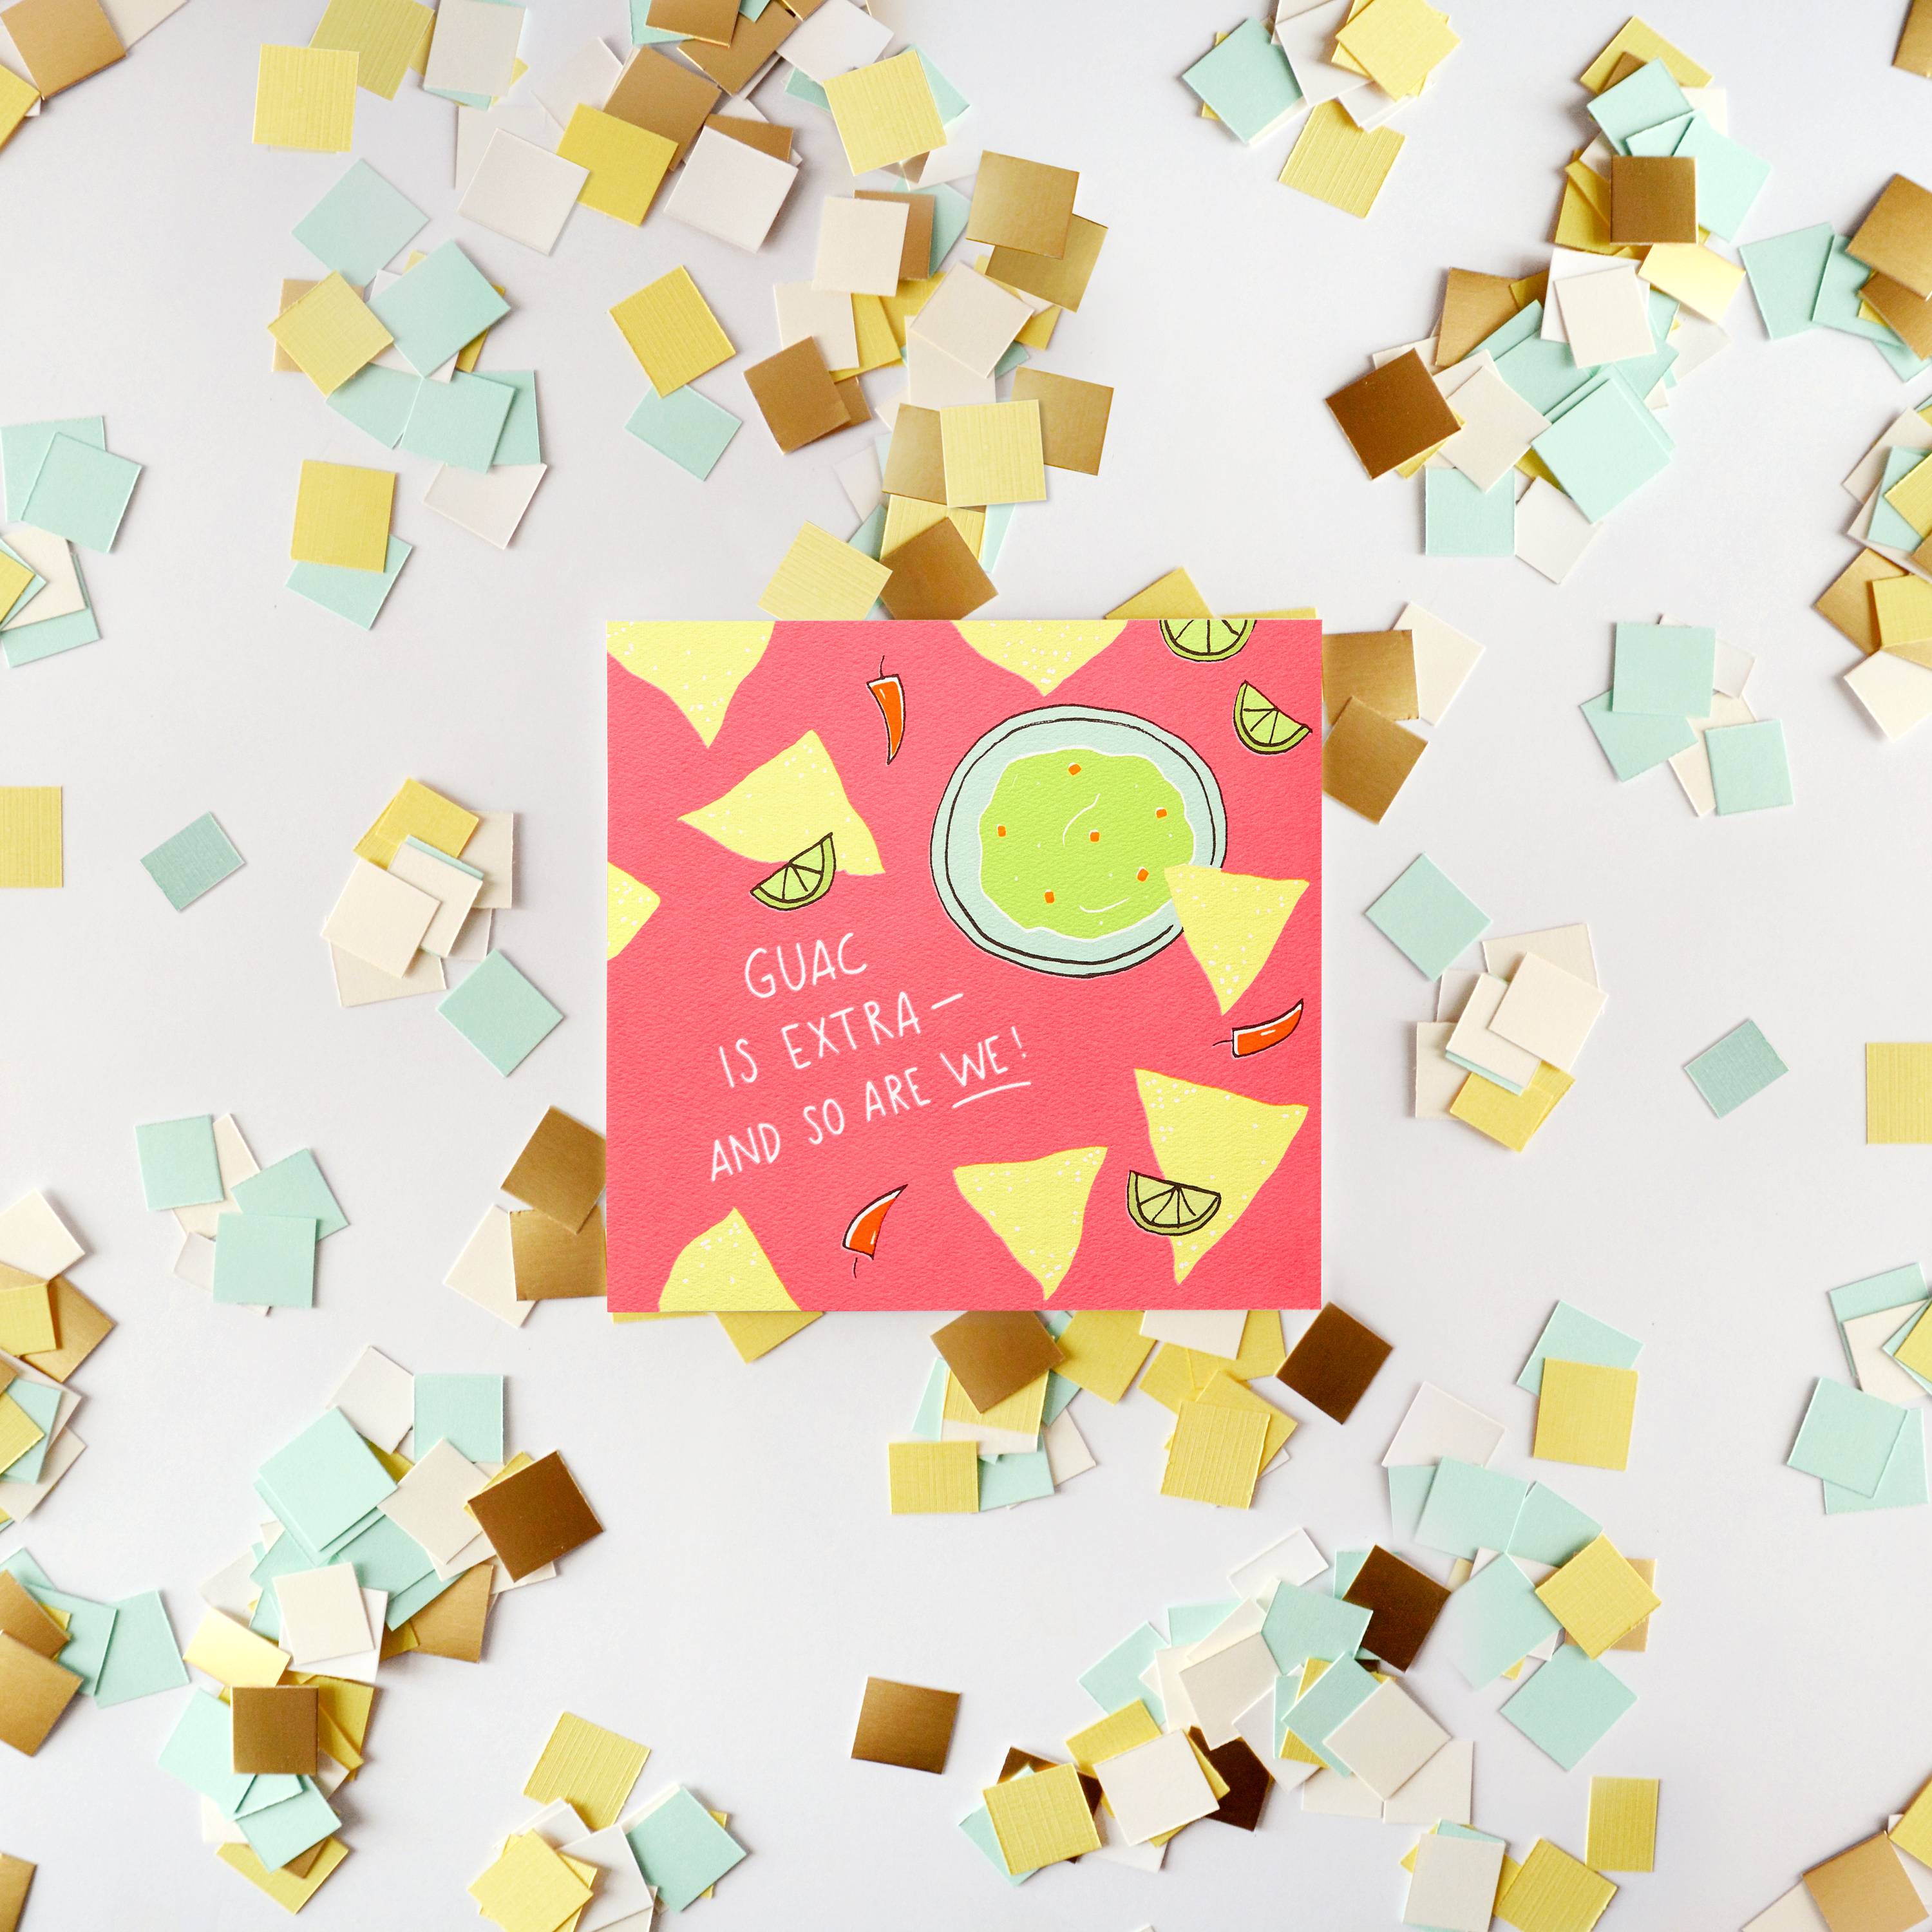 Guacamole Greeting Card - Birthday, Thinking of You, Friendship image